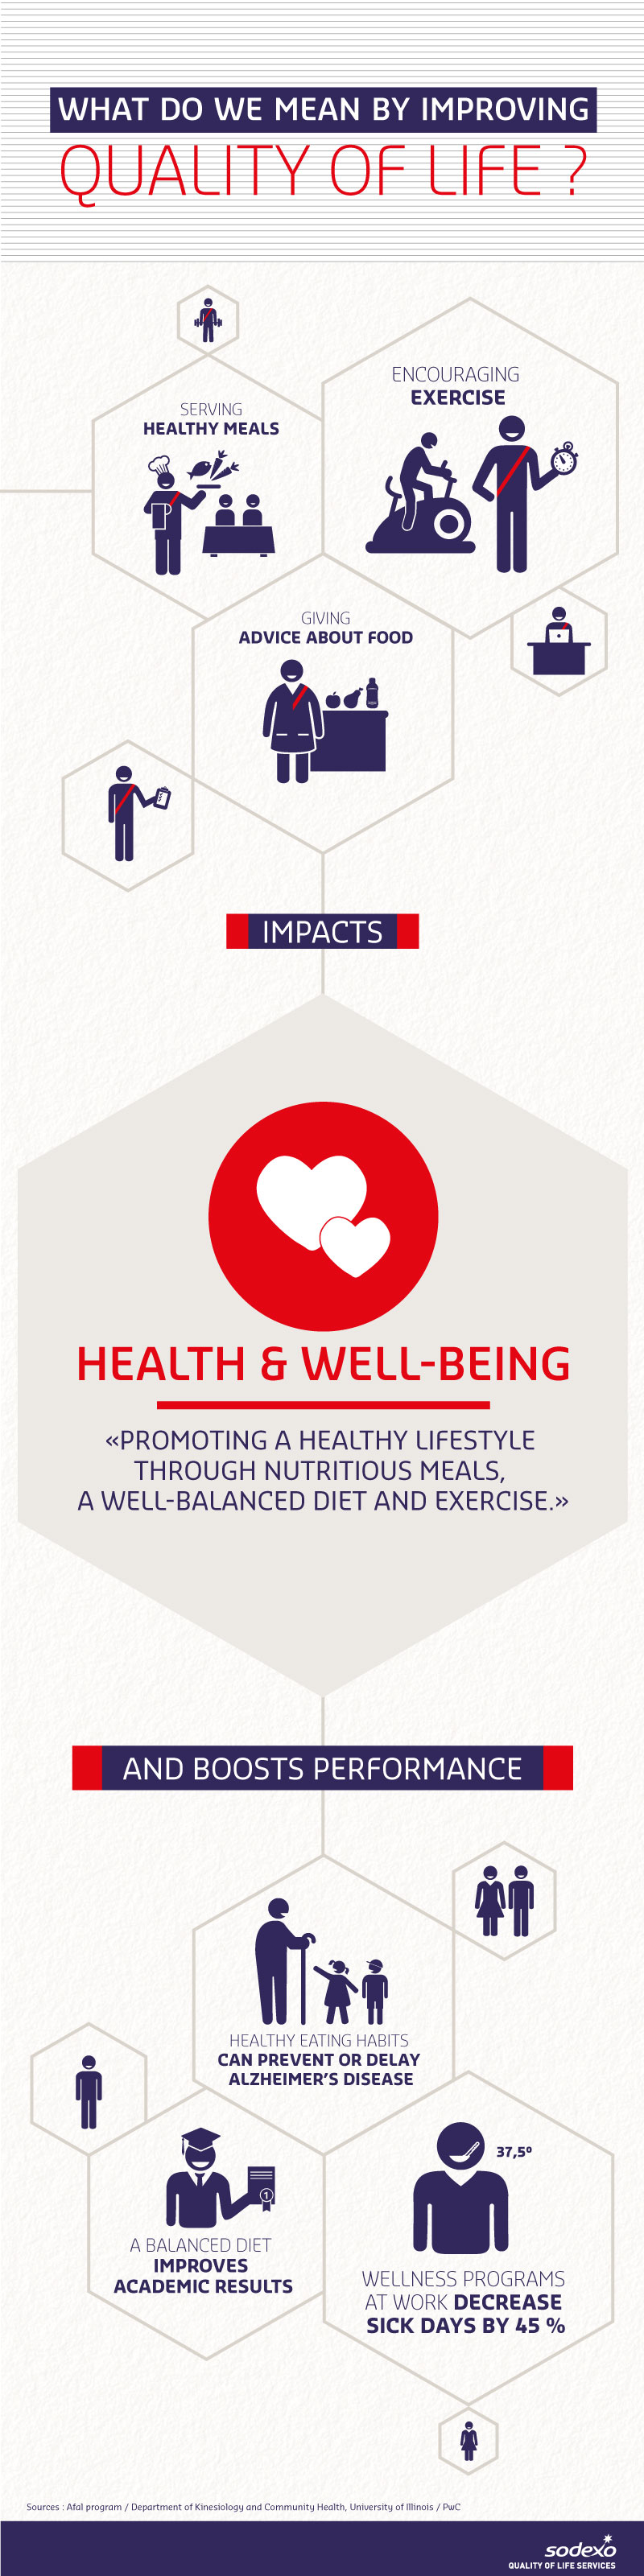 Quality of Life Dimension - Health & Wellbeing (infographic)